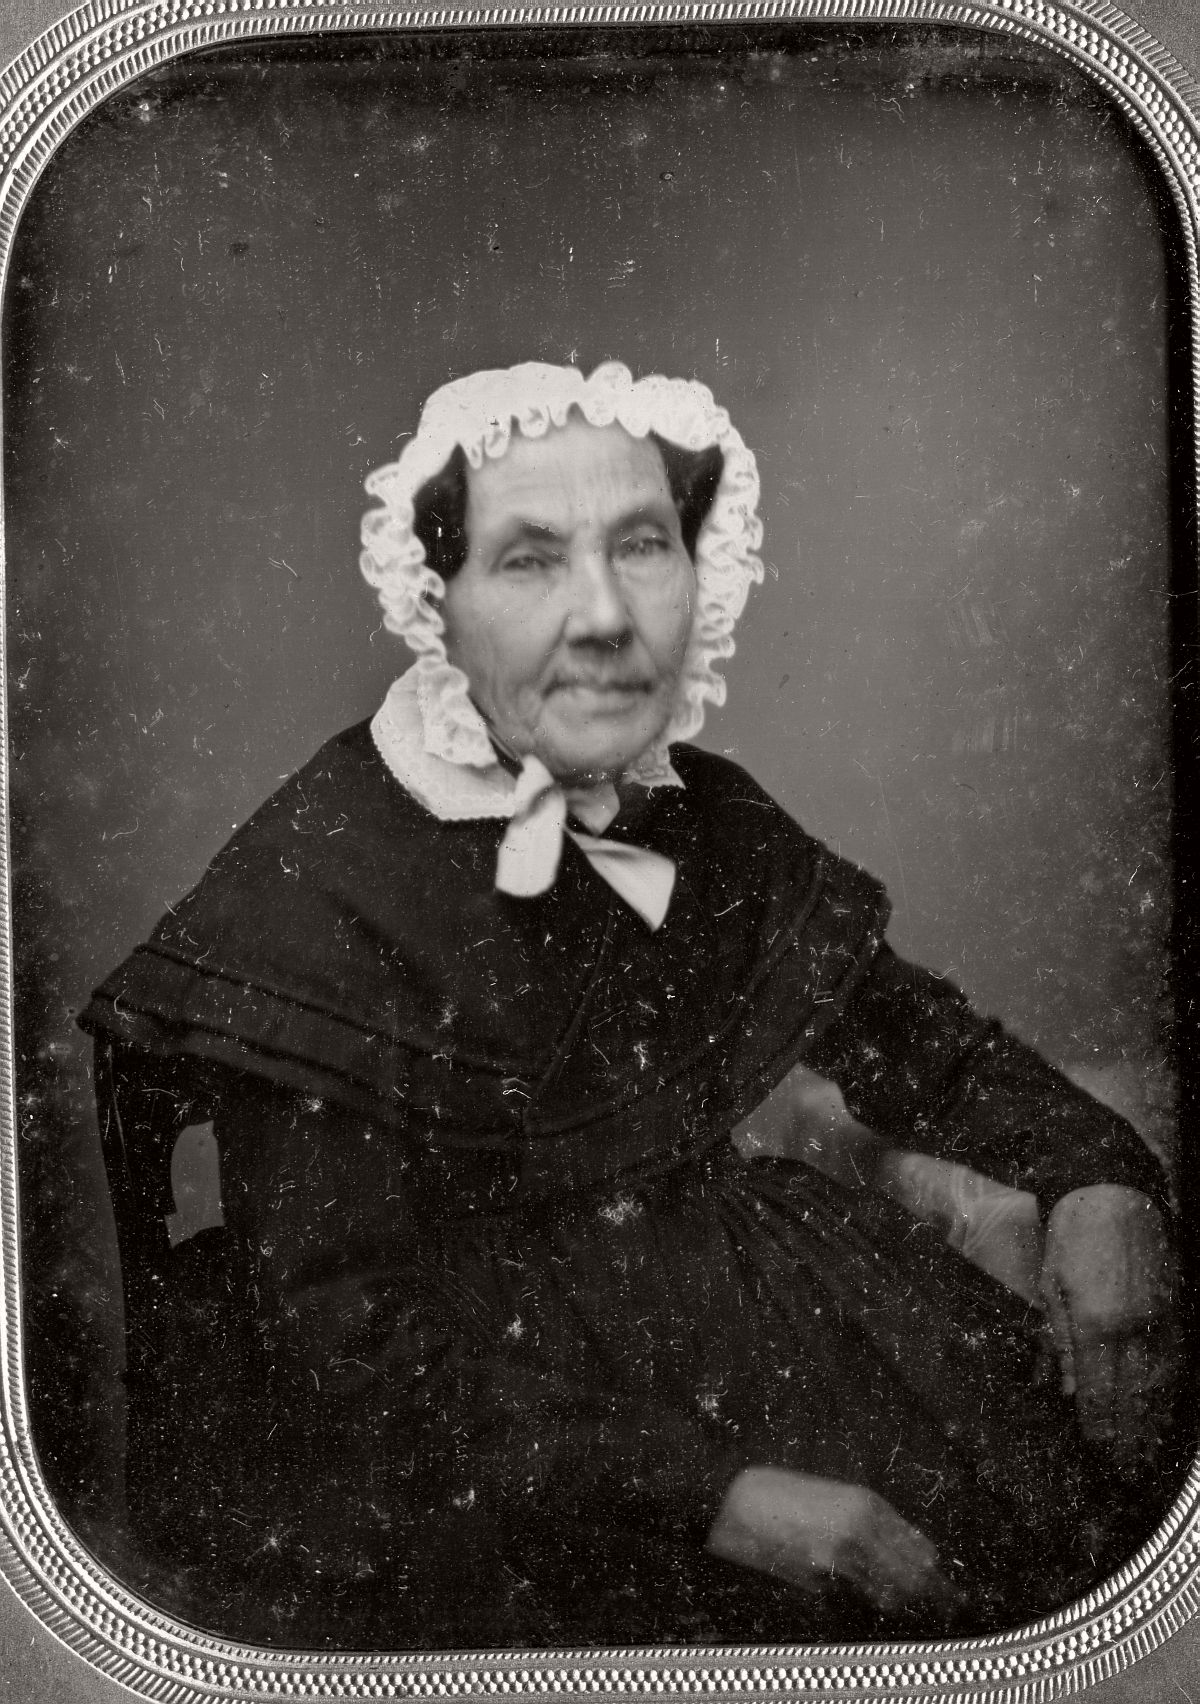 daguerreotype-portrait-people-born-in-the-late-18th-xviii-century-1700s-vintage-15